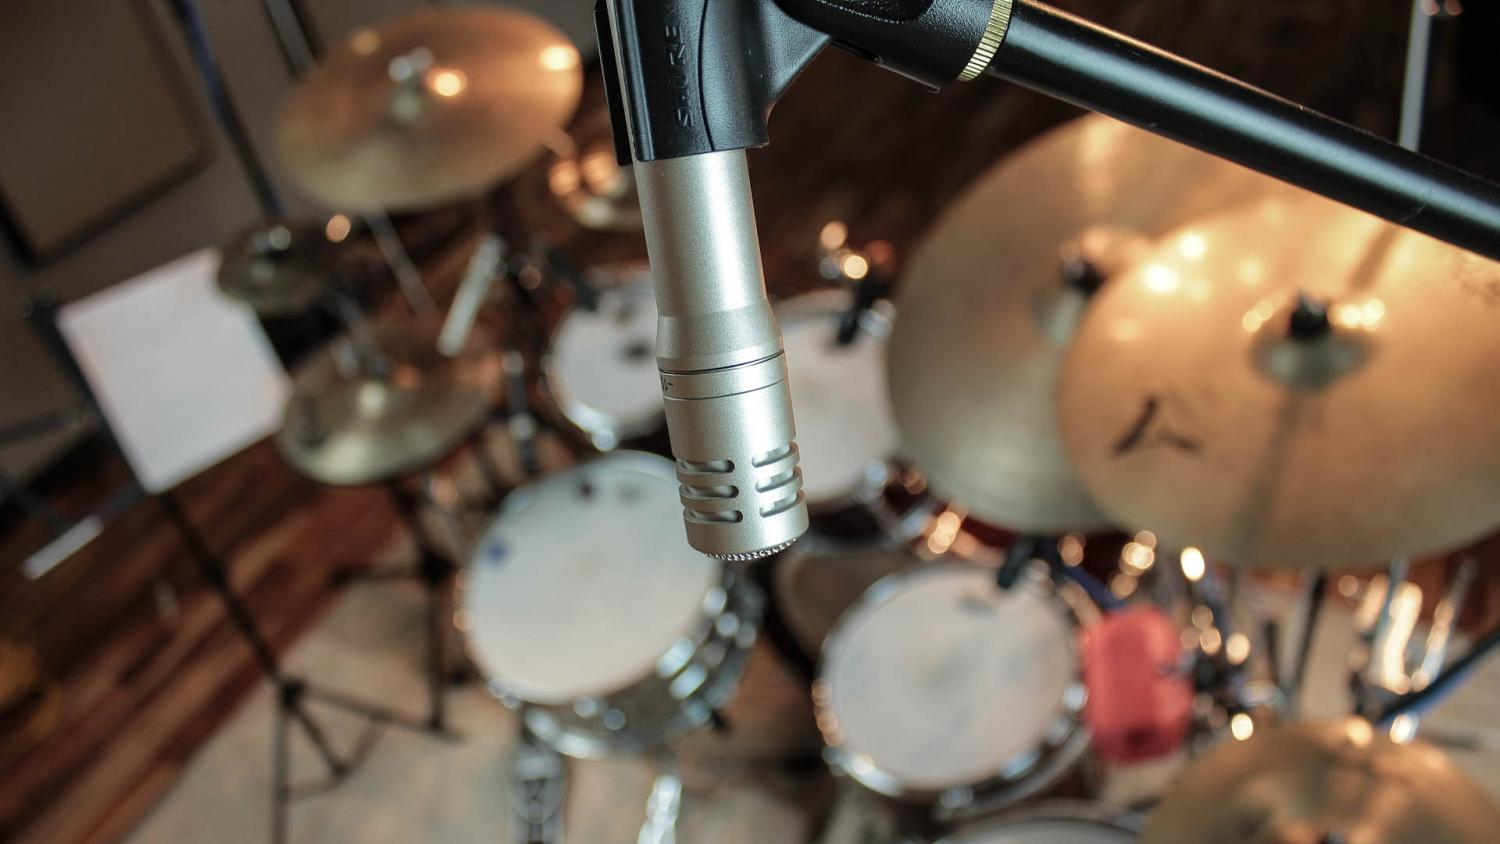 Sm81 mics used as overheads to capture more focused sound of the drums, as a classic drum tracks option for online drum tracks